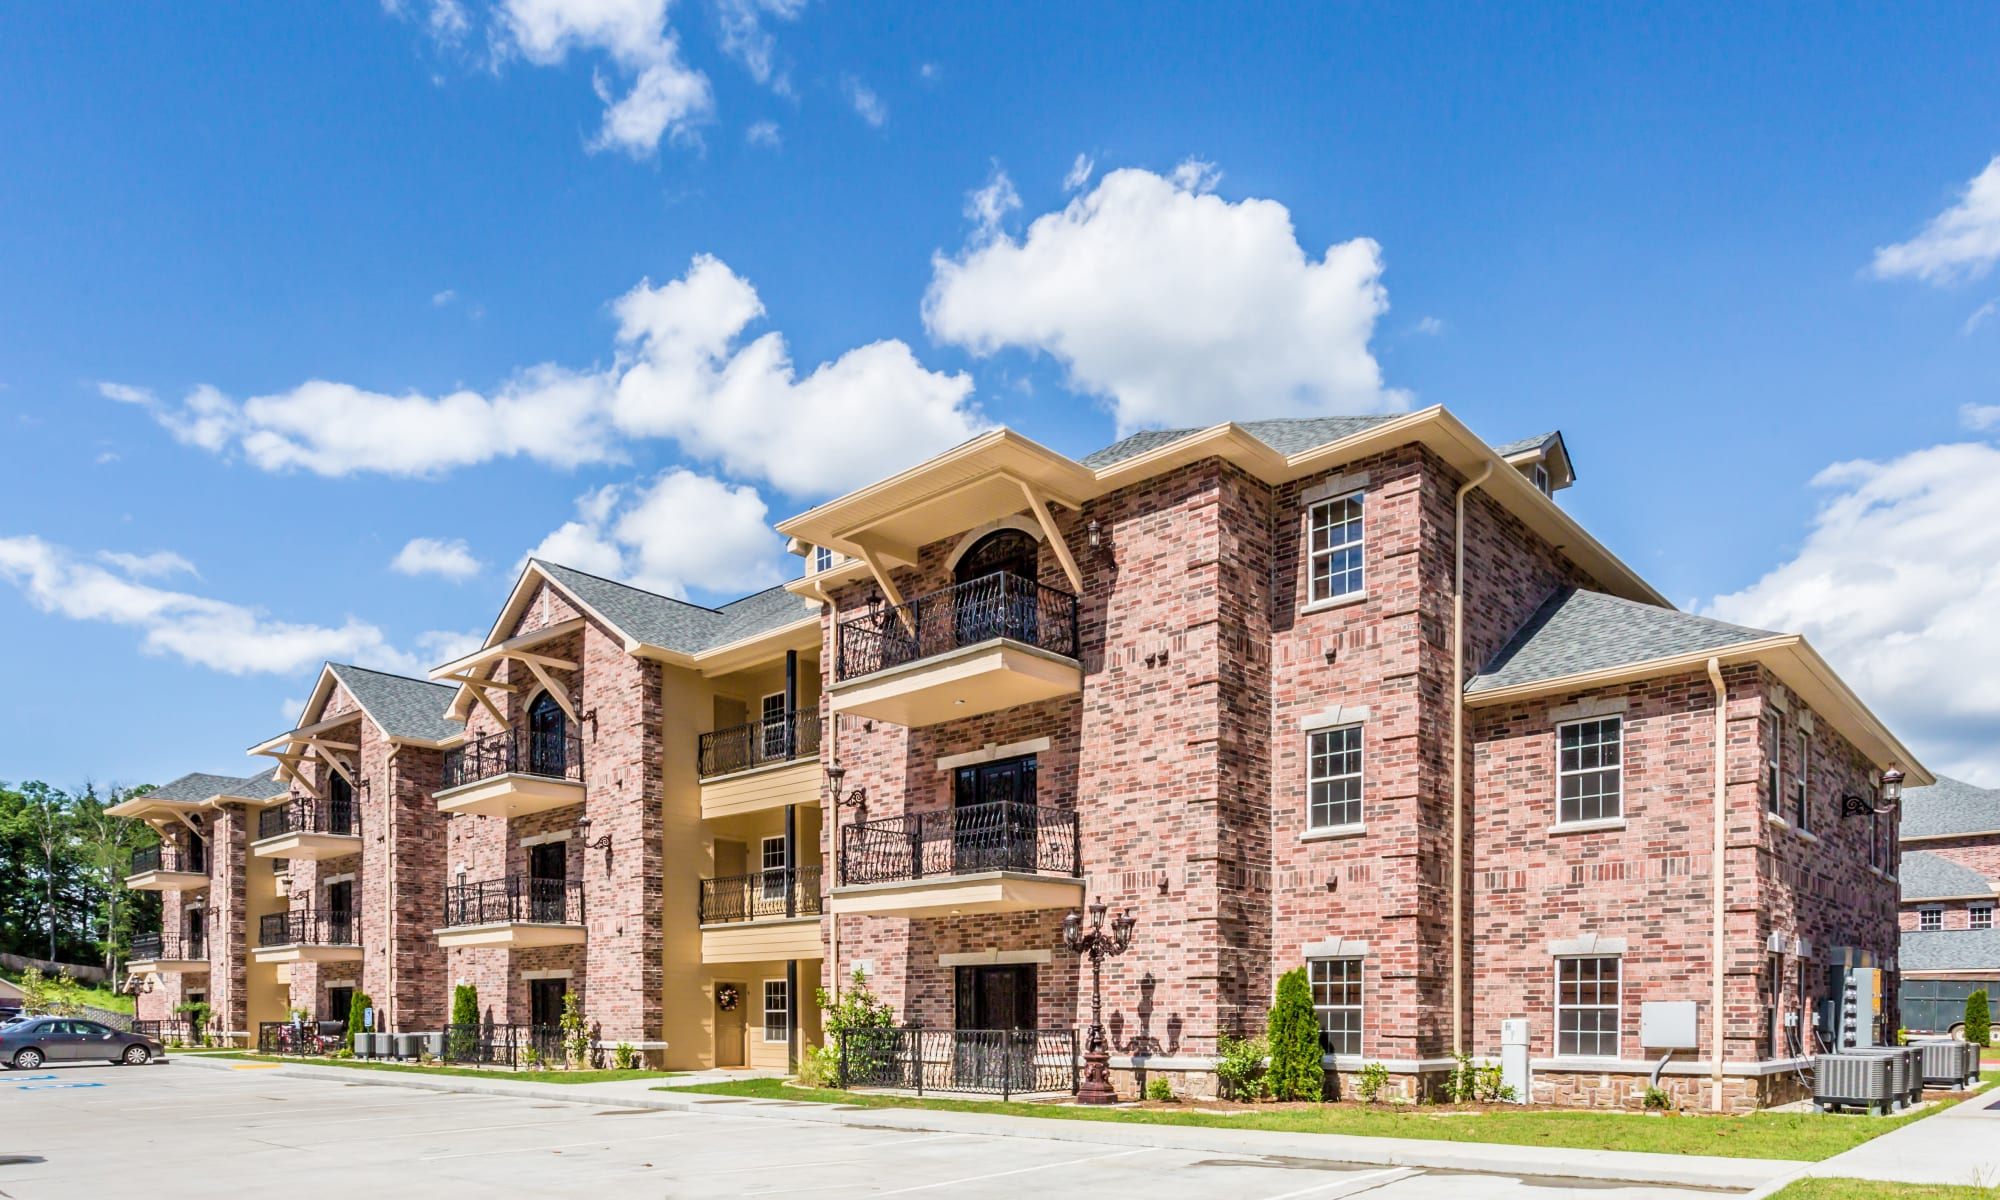 Apartments at Arlo Luxury Apartment Homes in Little Rock, Arkansas